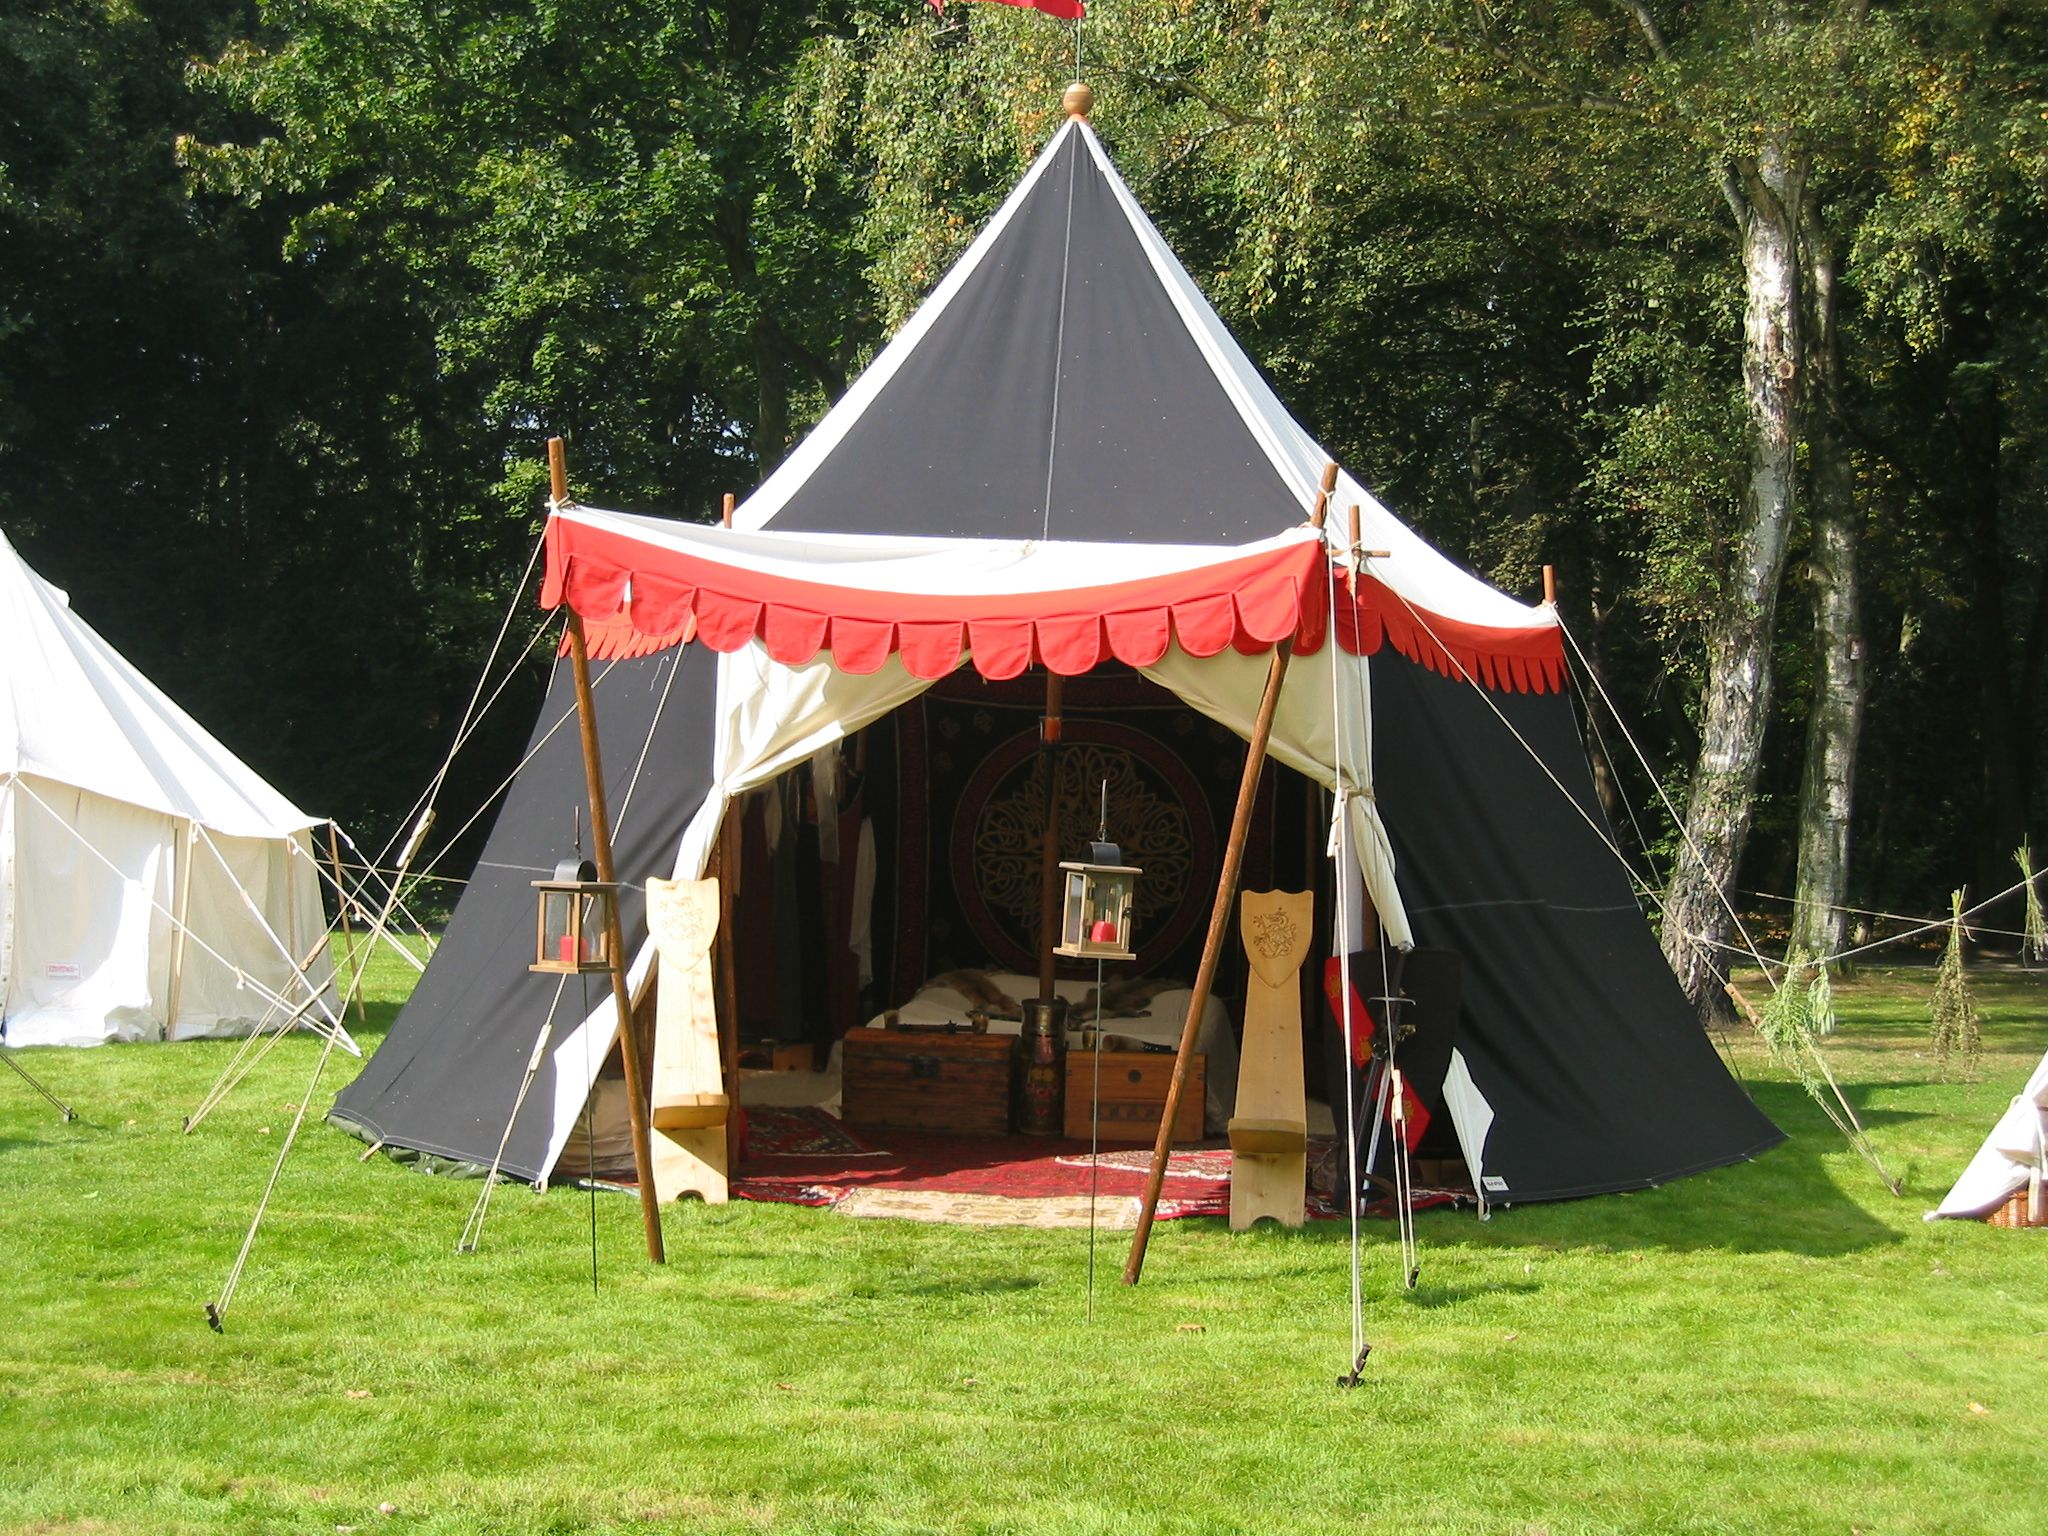 Medieval Tents Google Search Tents Camping Aesthetic